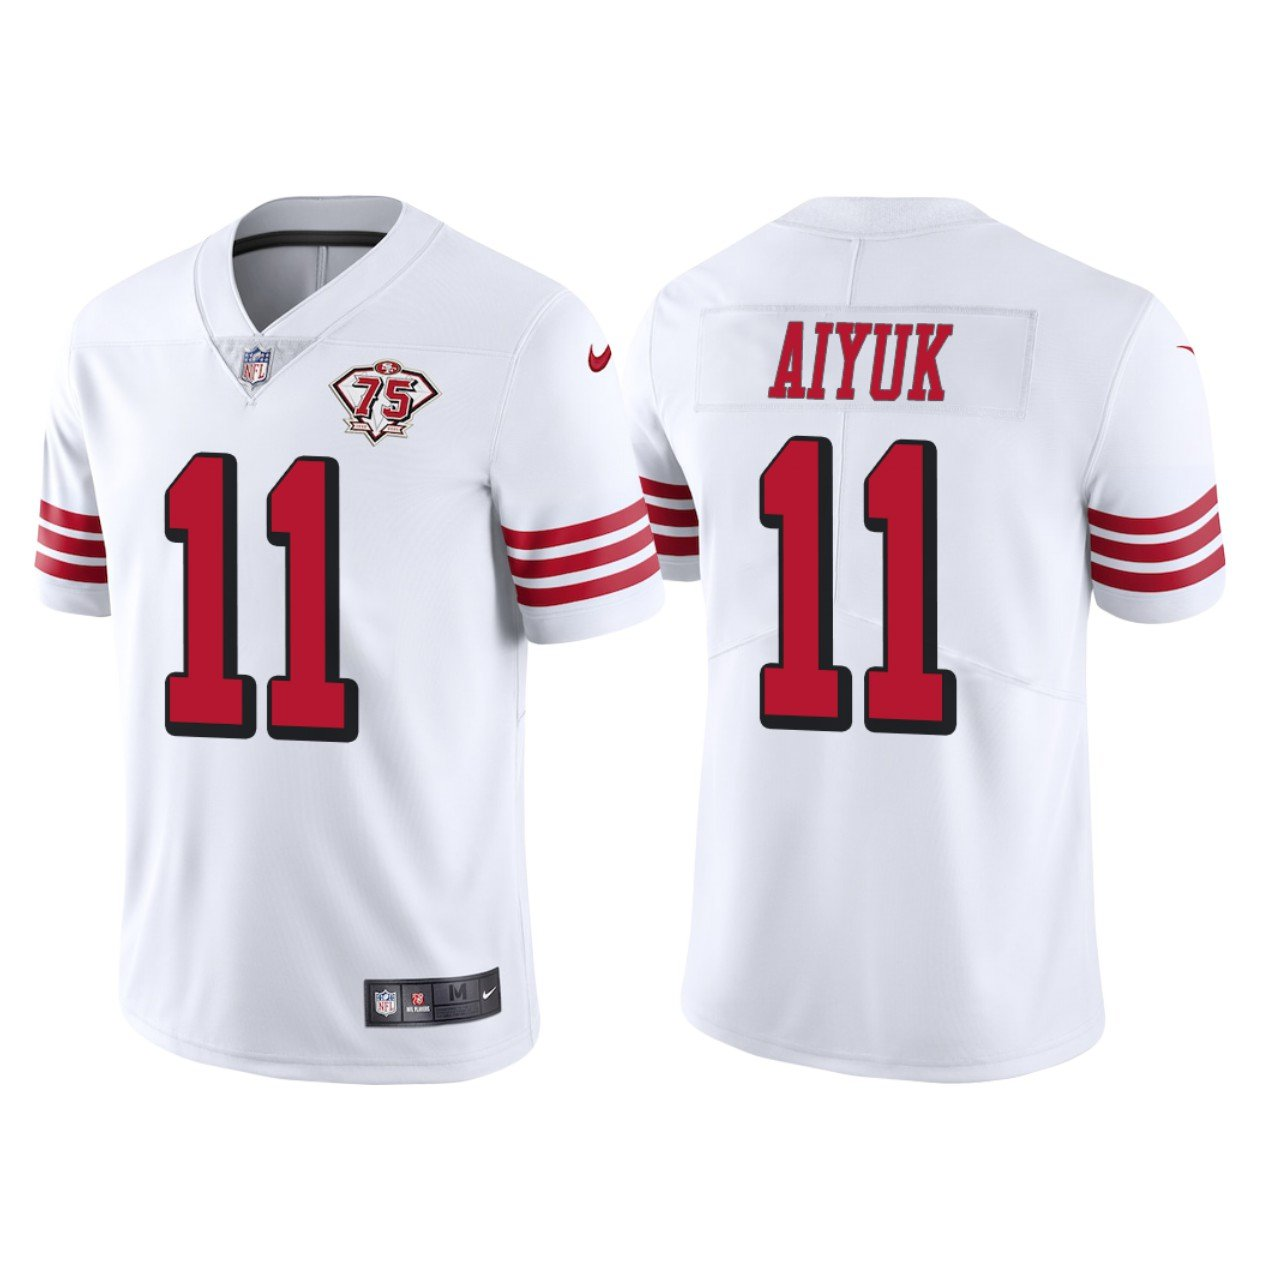 Men's #11 Brandon Aiyuk San Francisco 49ers White Throwback Limited Jersey 75th Anniversary Stitched